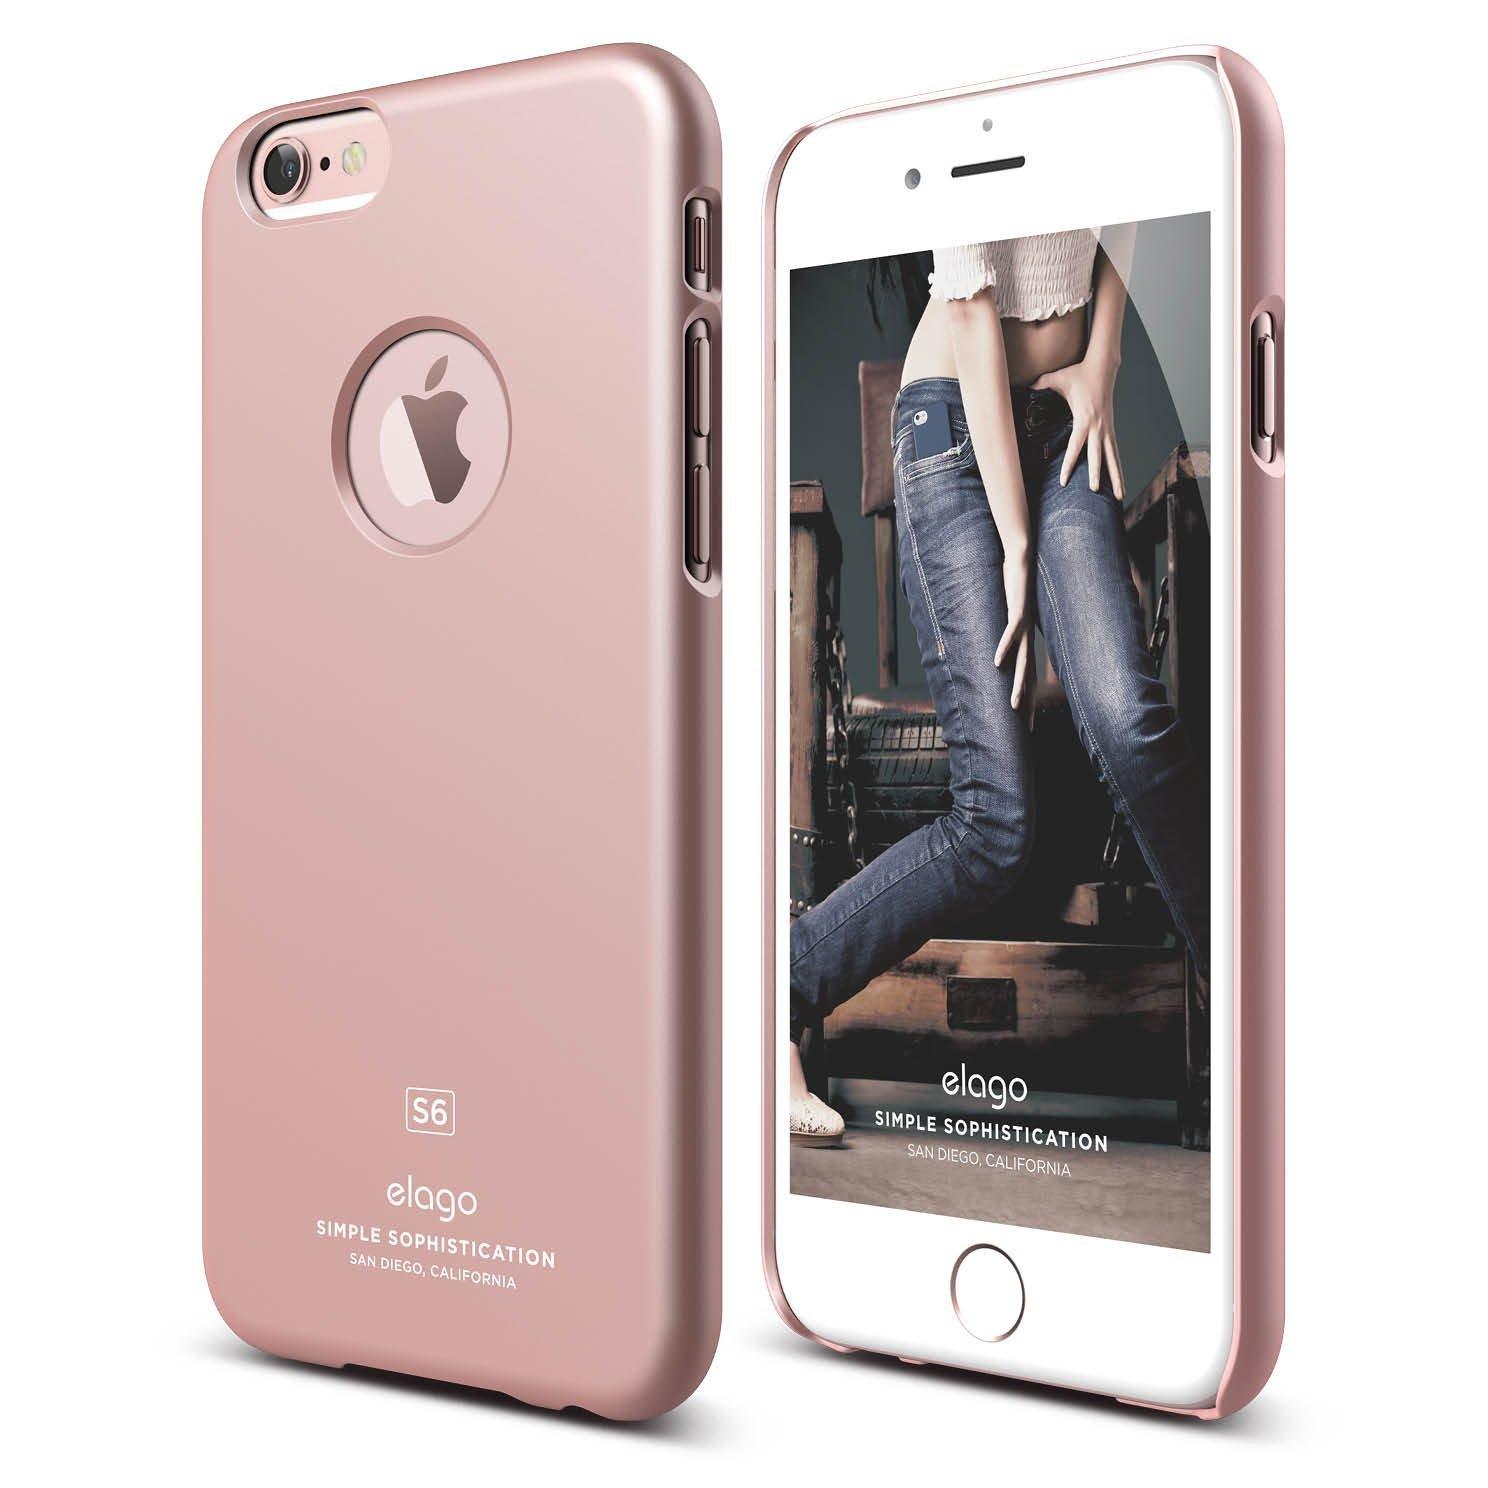 s6 slim fit case for iphone 6 6s plus rose gold elago. Black Bedroom Furniture Sets. Home Design Ideas